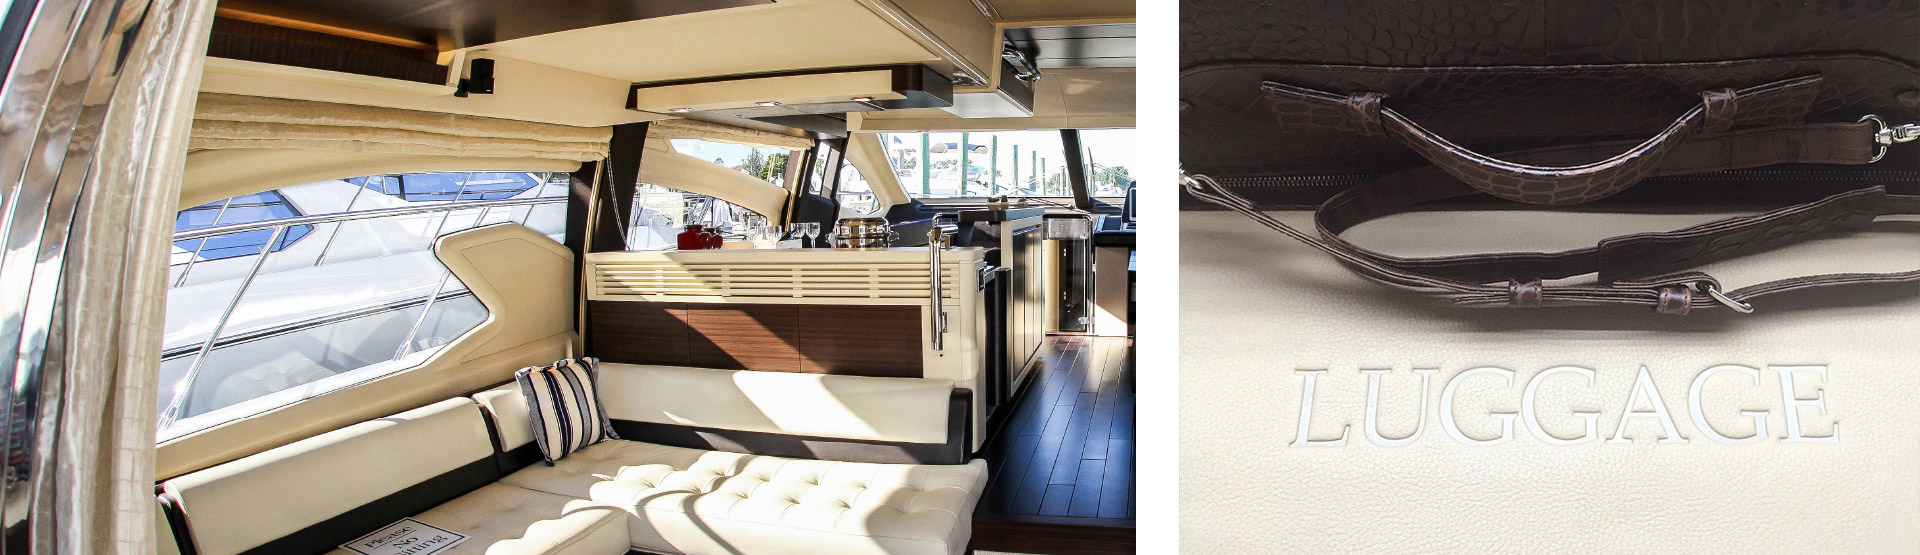 Decoration for yachts and jets